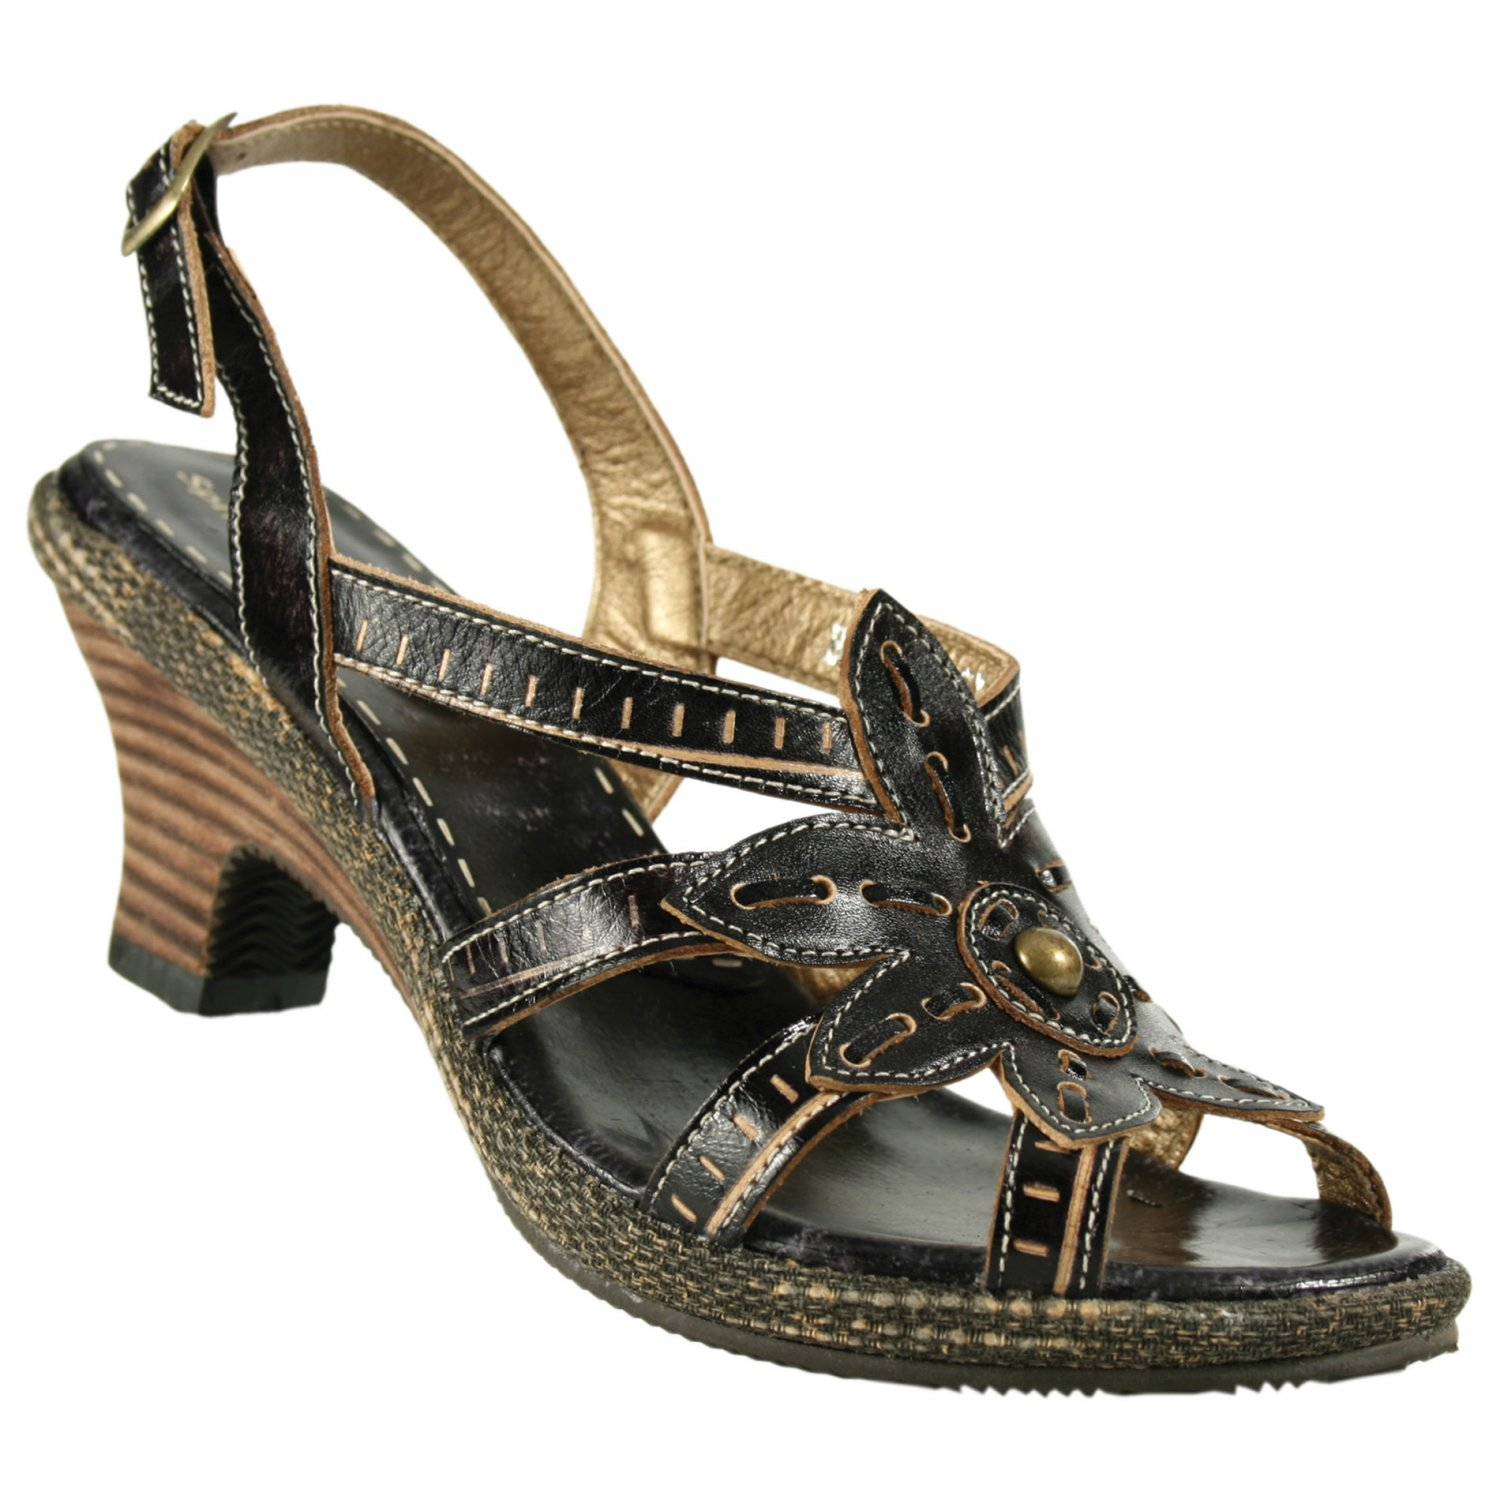 Spring Step SALVIA Sandals Shoes All Sizes & Colors $8